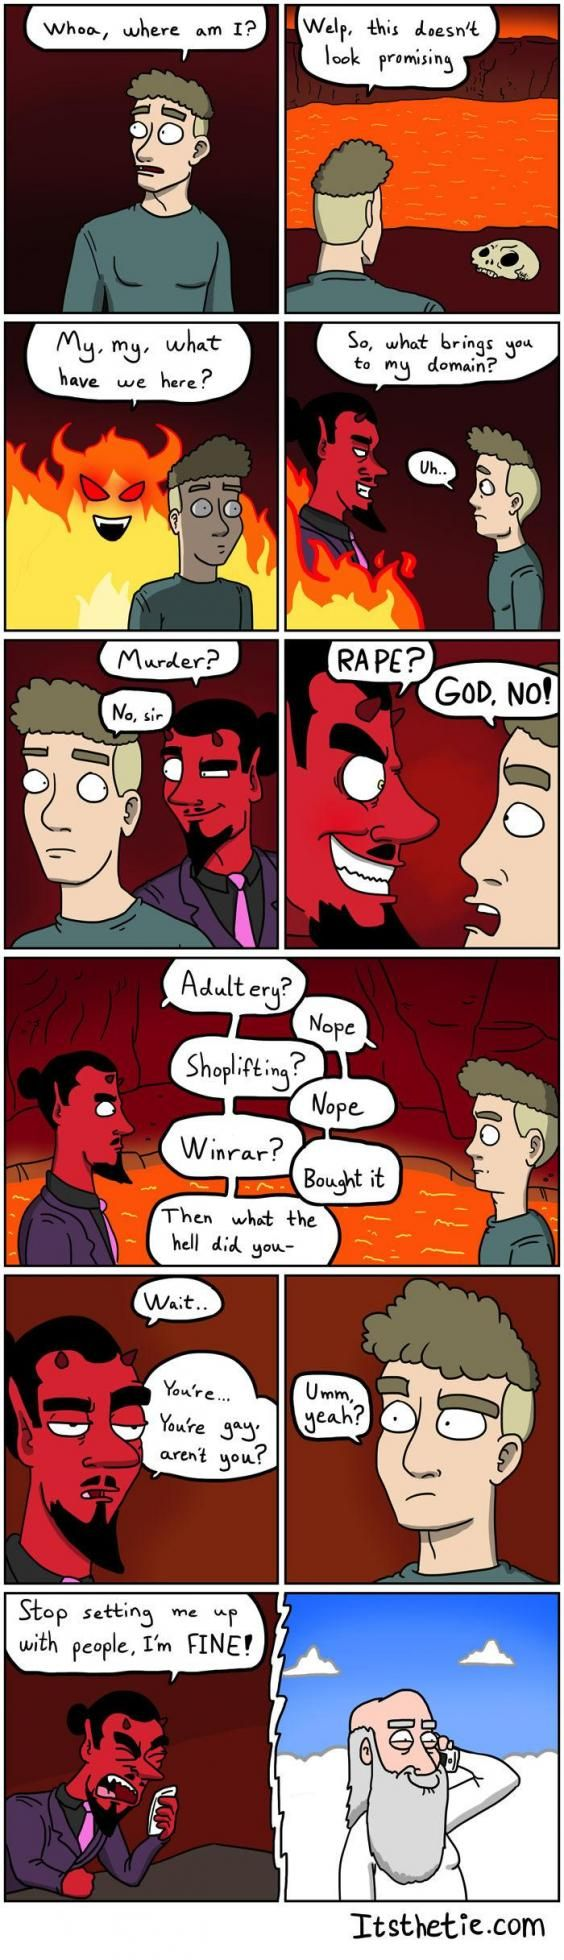 People are loving this comic strip about a gay man who arrives inhell thanks to its sweet subversion ofthe more traditionalstrains of Christianity. The comic, which came out in October 2015, was part of a series called Adventures of God,featuringprotagonists God, Jesus and Satan. In this episode, it turns out that the gay man is in hell because God wants to set Satan up with a new boyfriend.